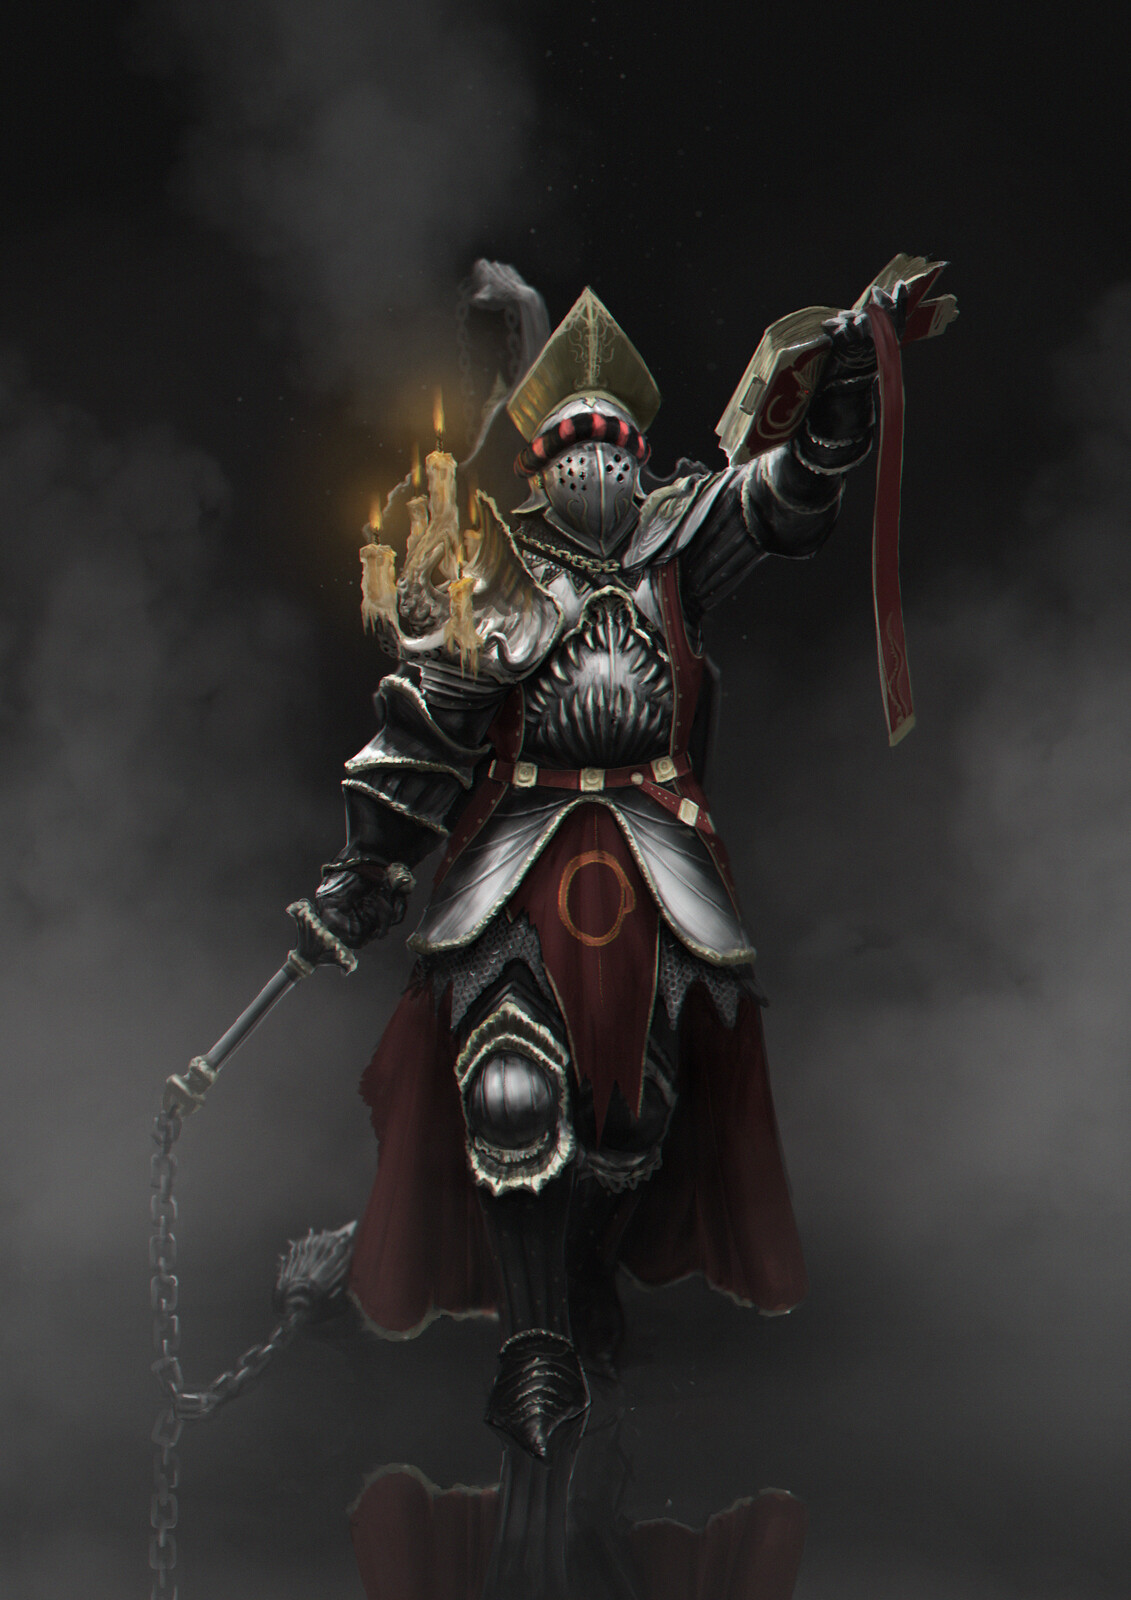 The unholy bishop